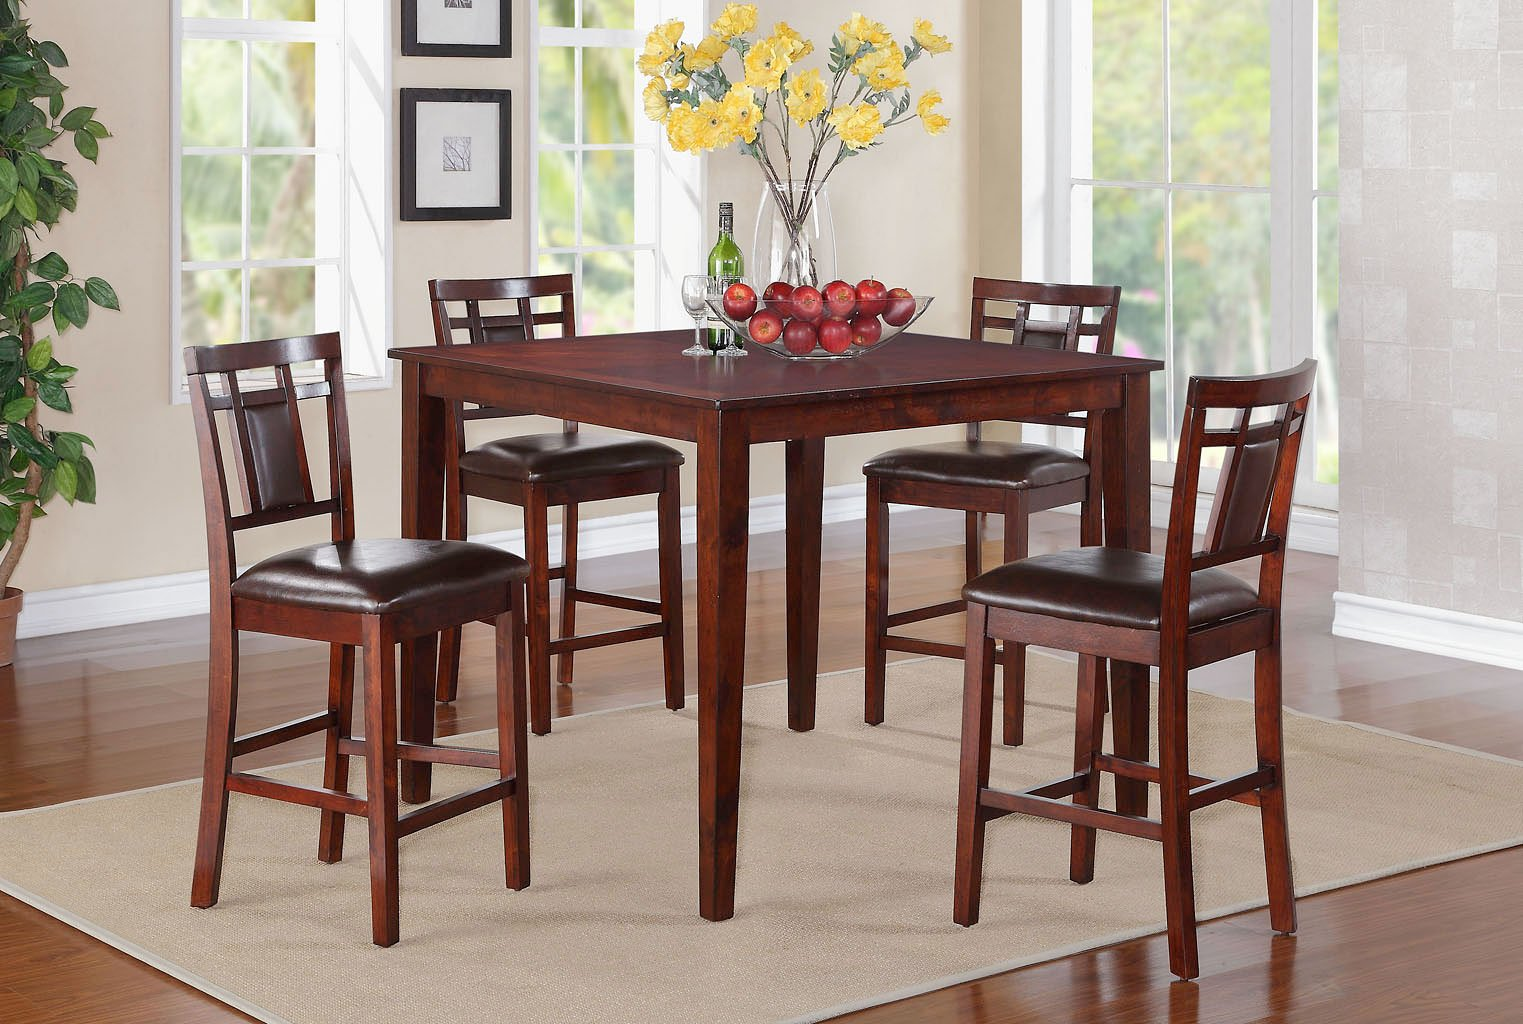 Westlake 5-Piece Counter Height Dining Room Set Standard Furniture